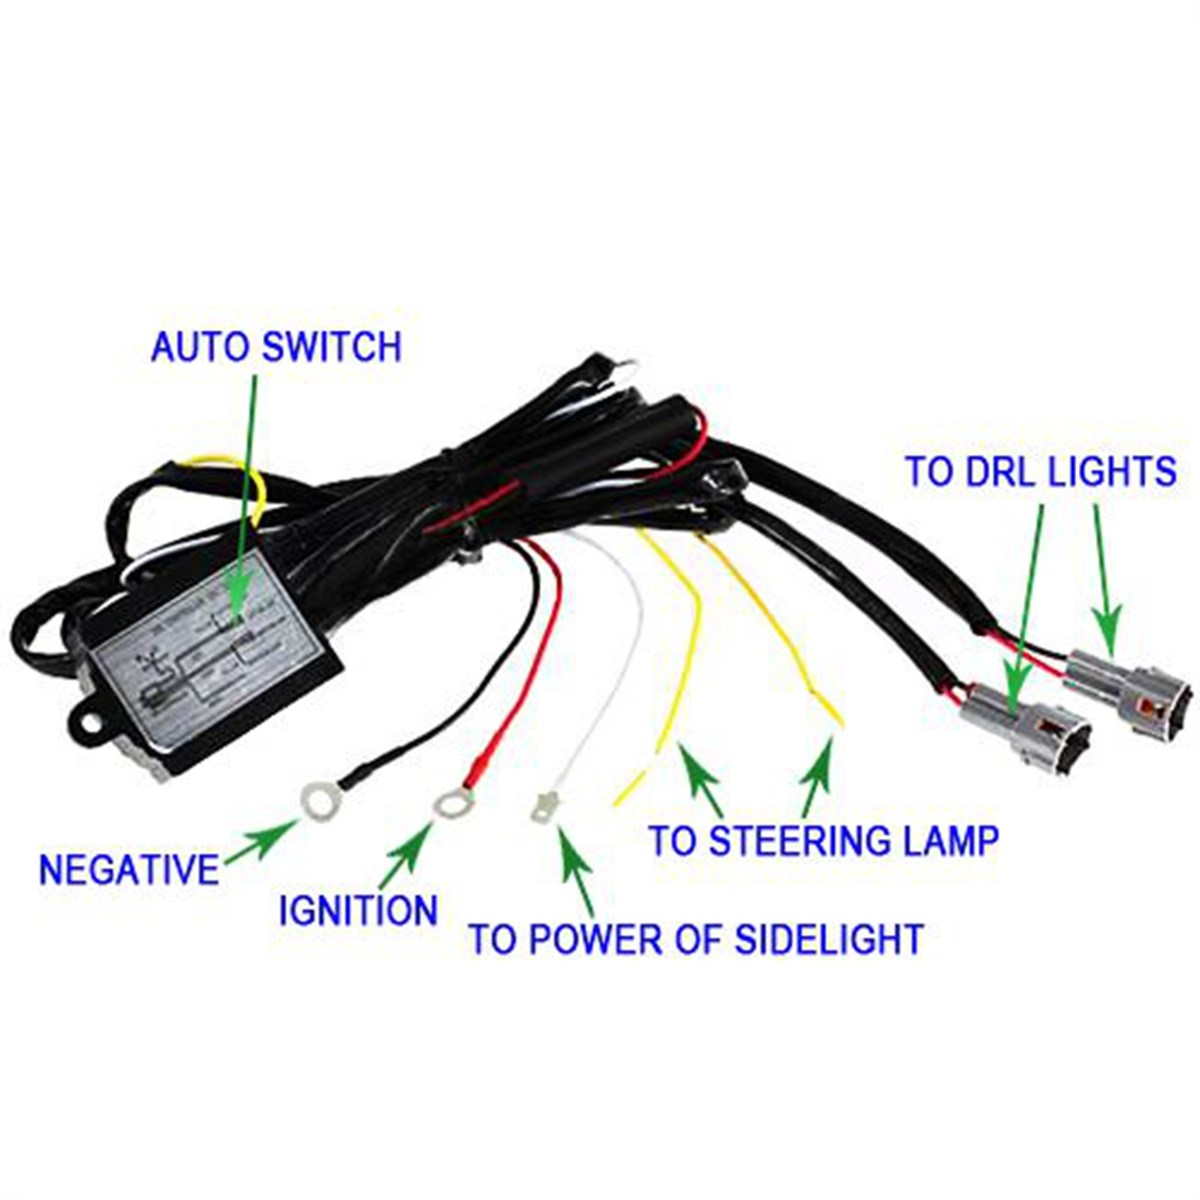 DRL LED Daytime Running Light Relay Harness Automatic On Off Control Switch 12V Warning lights drl led daytime running light relay harness automatic on off control